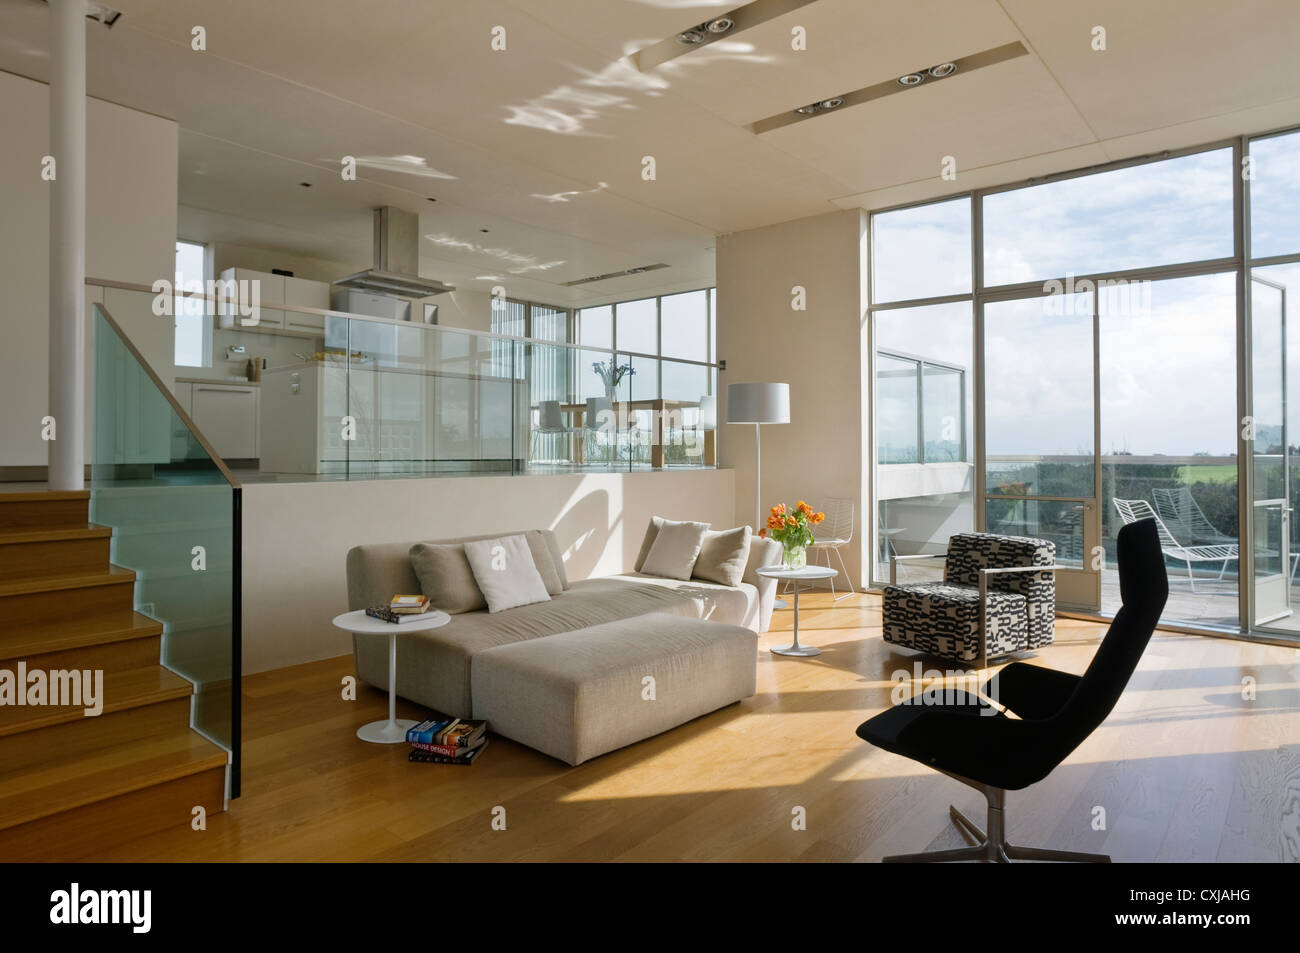 split-level open plan living room and kitchen stock photo, royalty